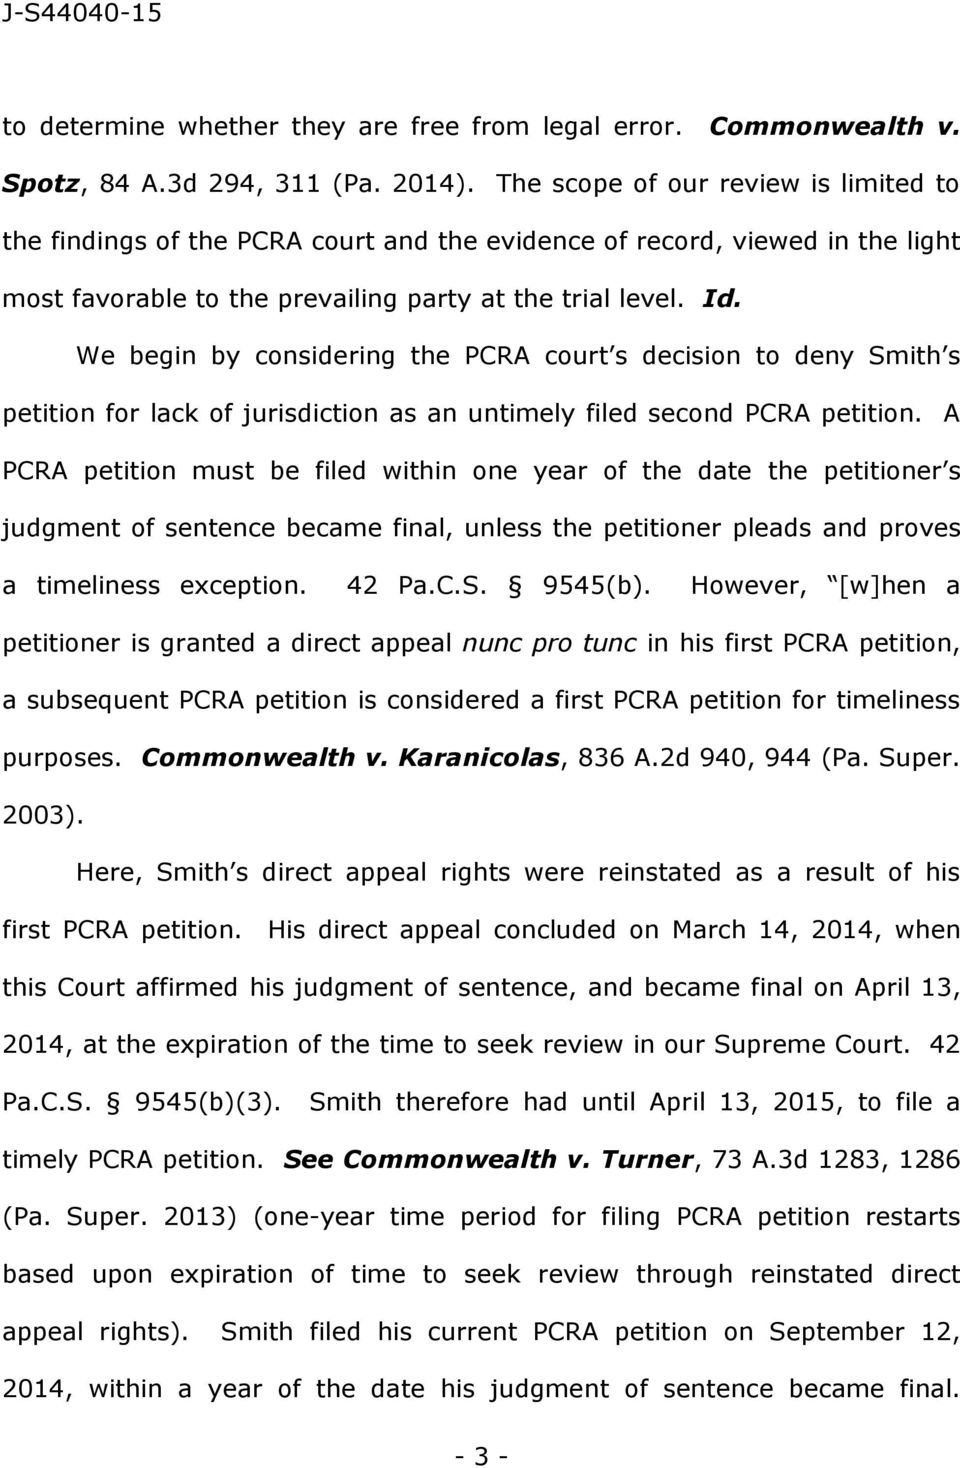 We begin by considering the PCRA court s decision to deny Smith s petition for lack of jurisdiction as an untimely filed second PCRA petition.